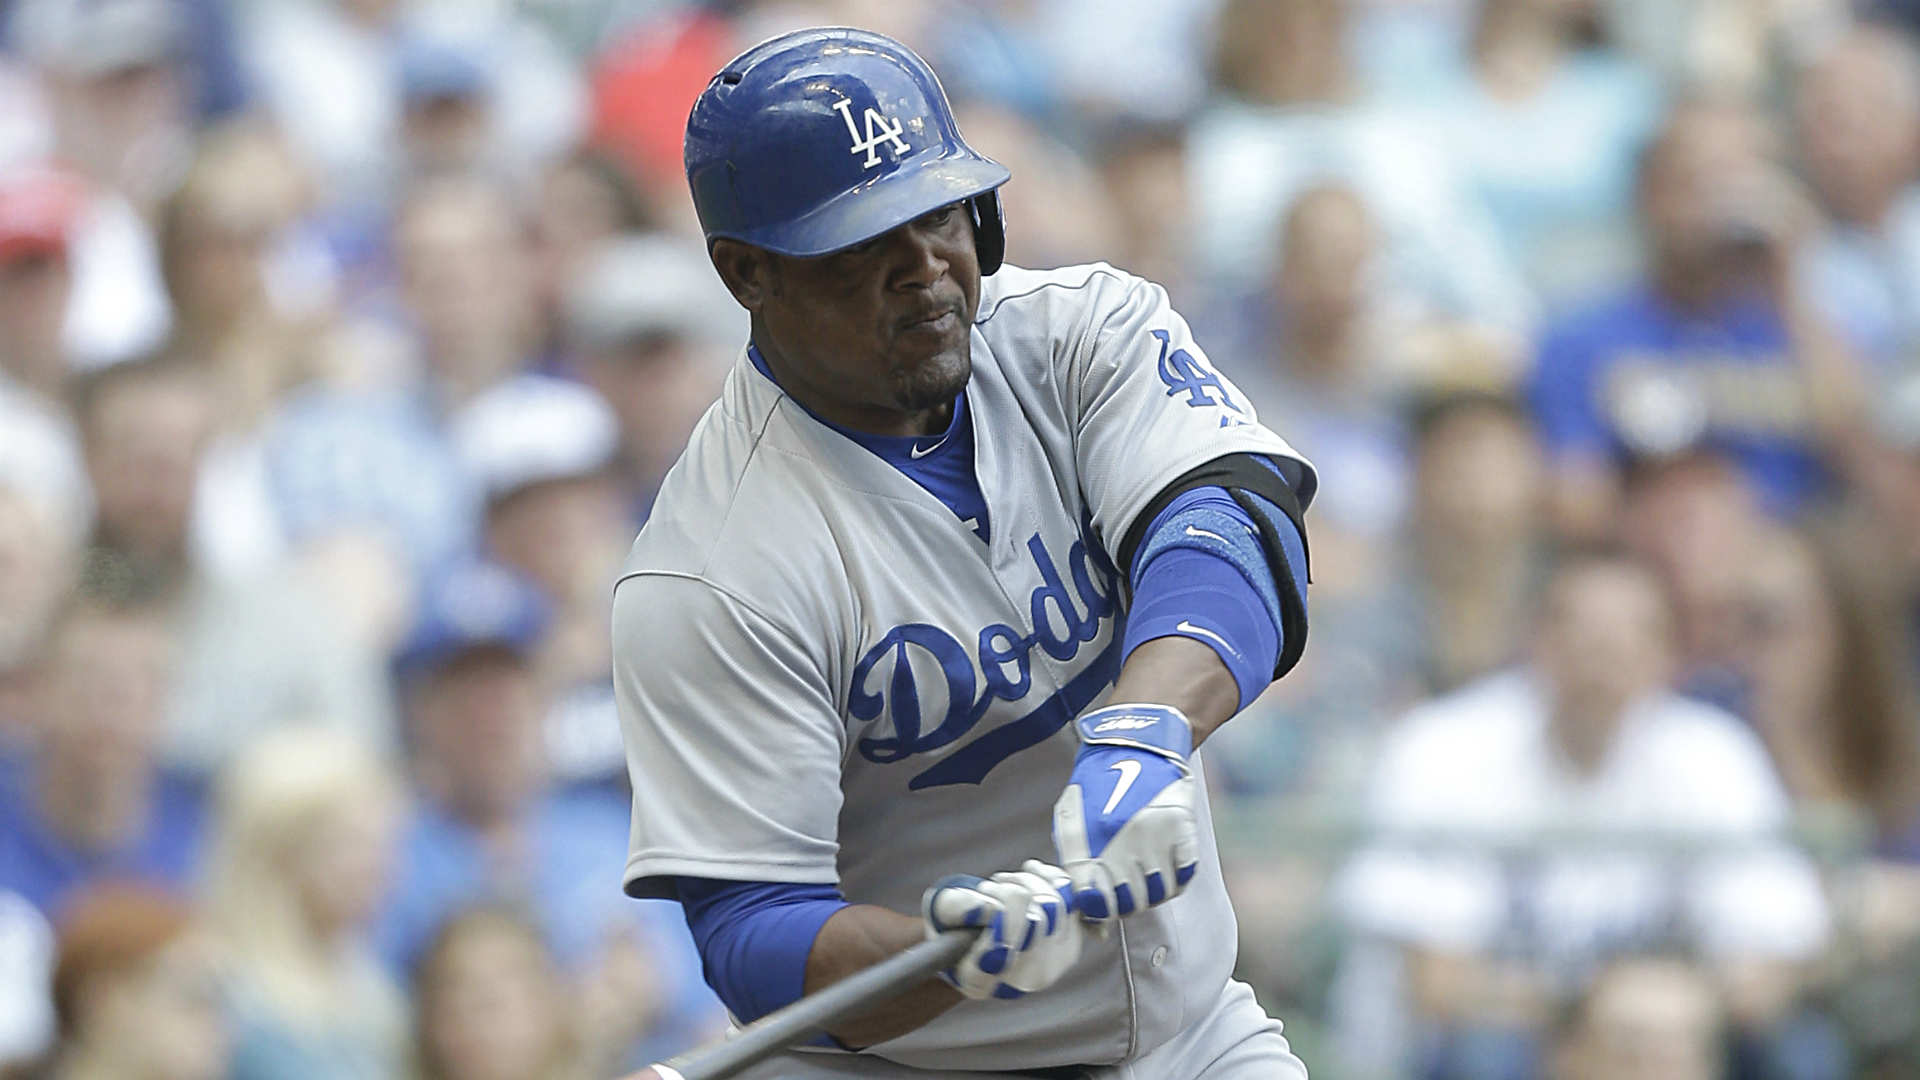 Braves, Dodgers finalize Callaspo-Uribe trade